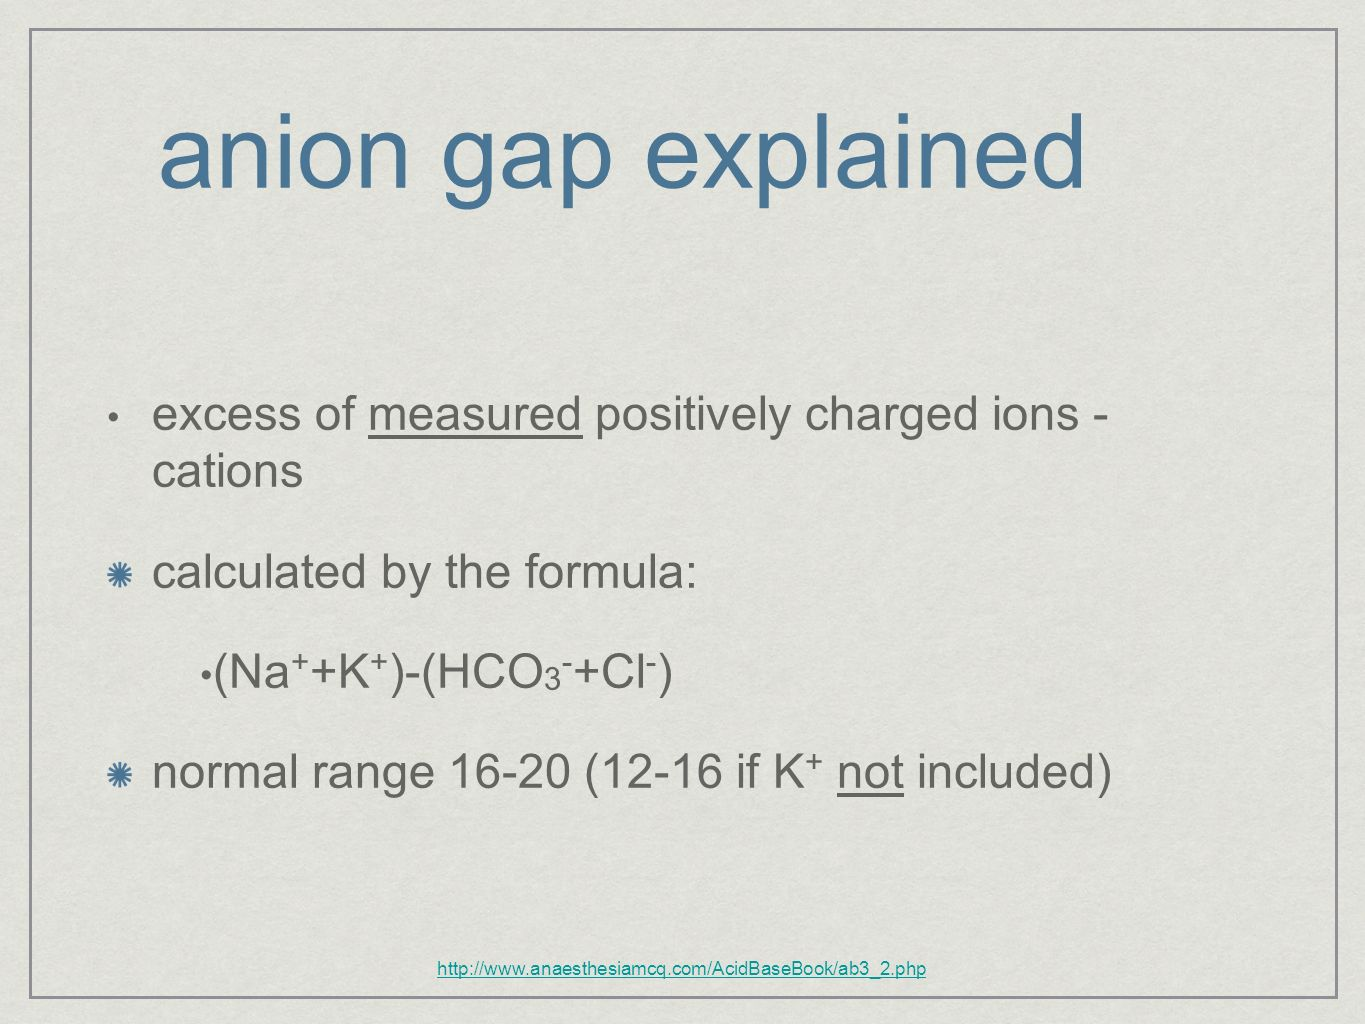 anion gap explained excess of measured positively charged ions - cations. calculated by the formula: